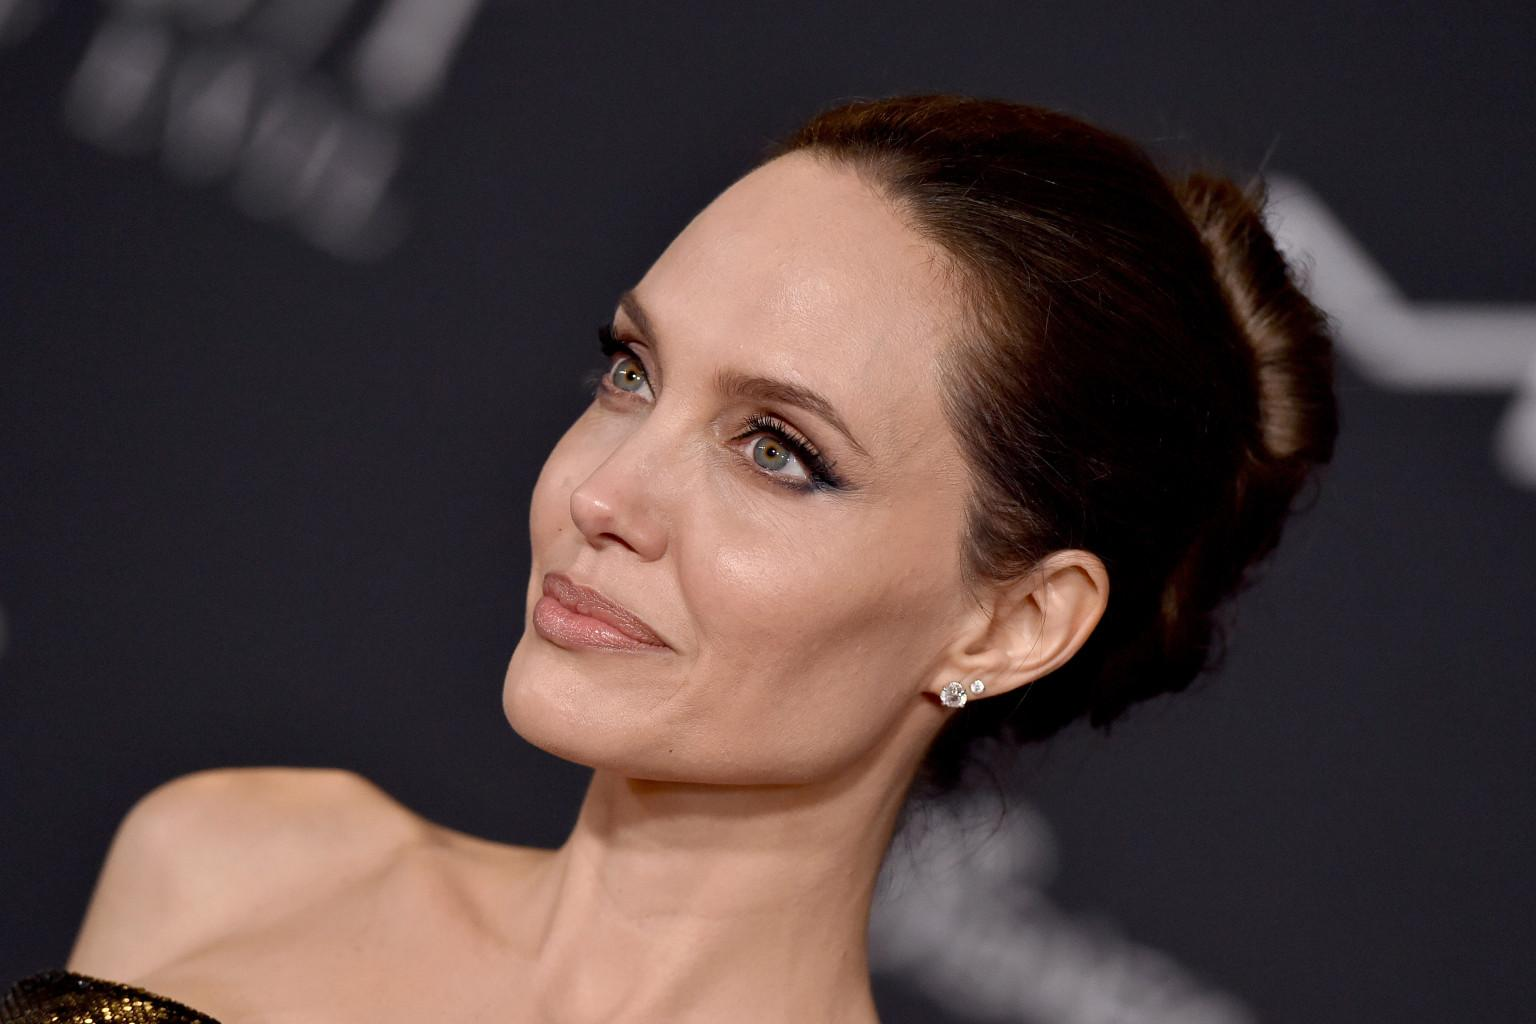 Angelina Jolie Has Some Great Advice For Victims Of Domestic Abuse Stuck With Their Abusers During The Holidays!